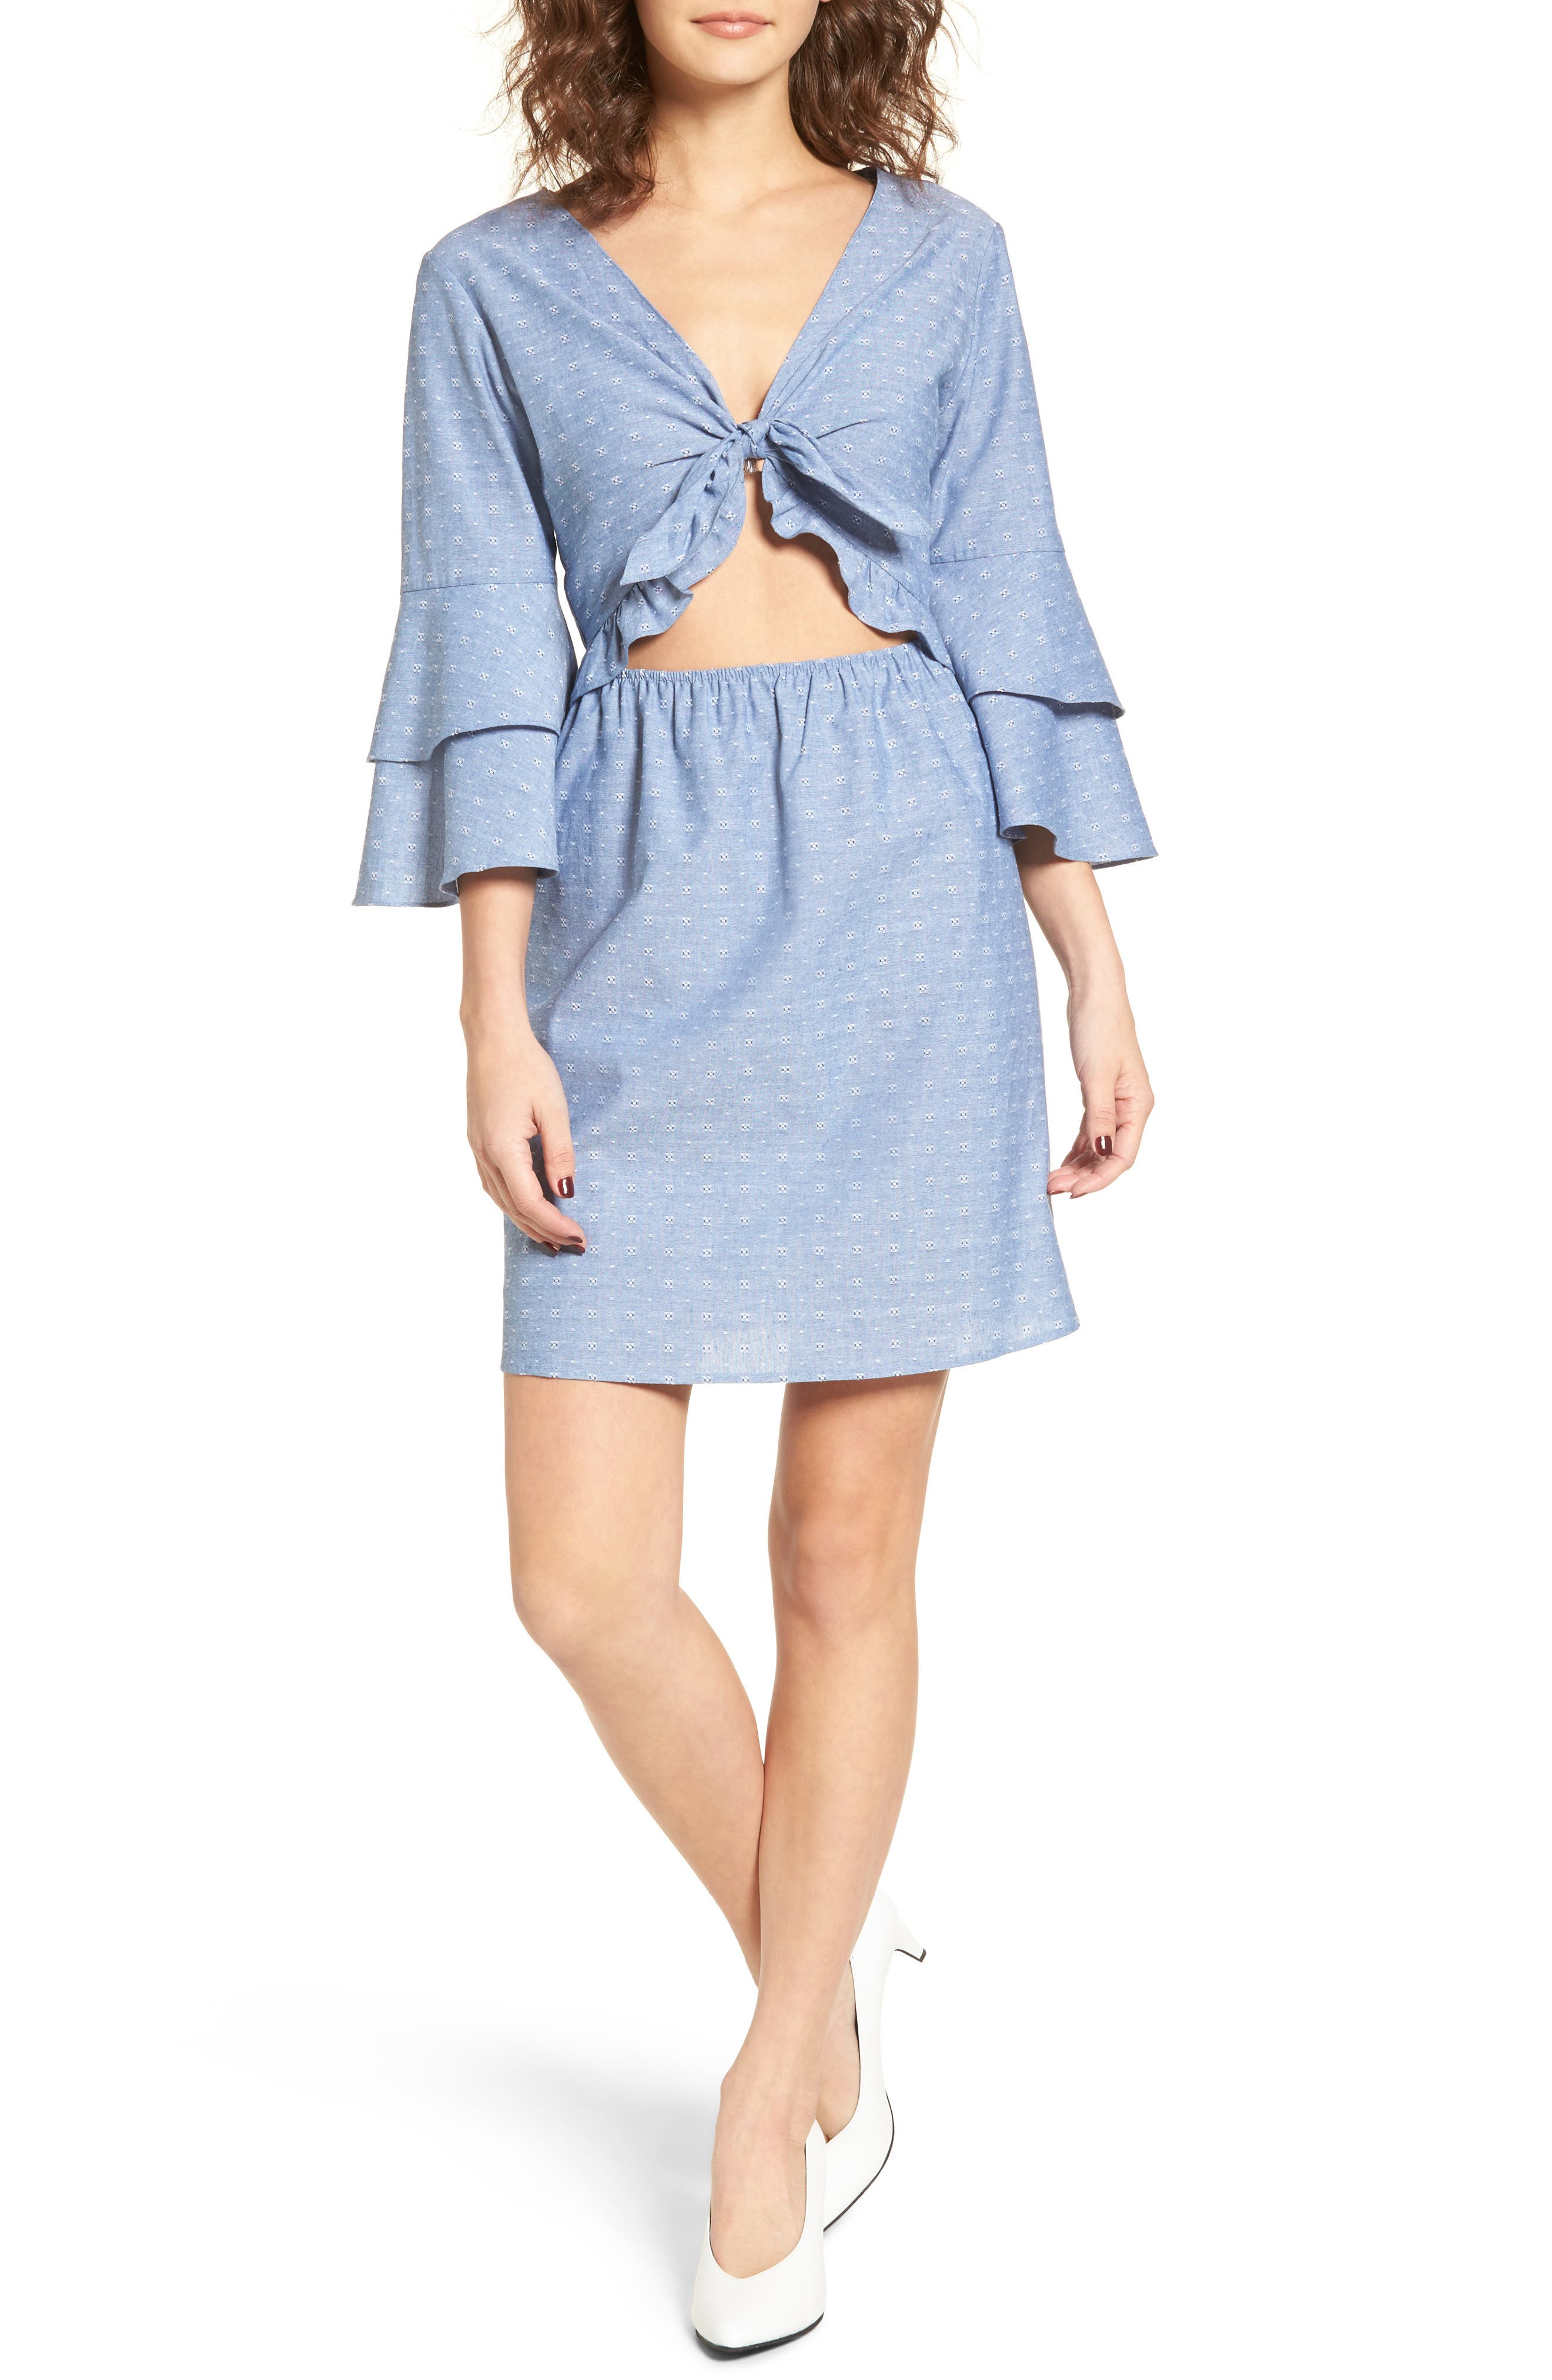 EVERLY,                             Cutout Tiered Sleeve Dress,                             Alternate thumbnail 5, color,                             400